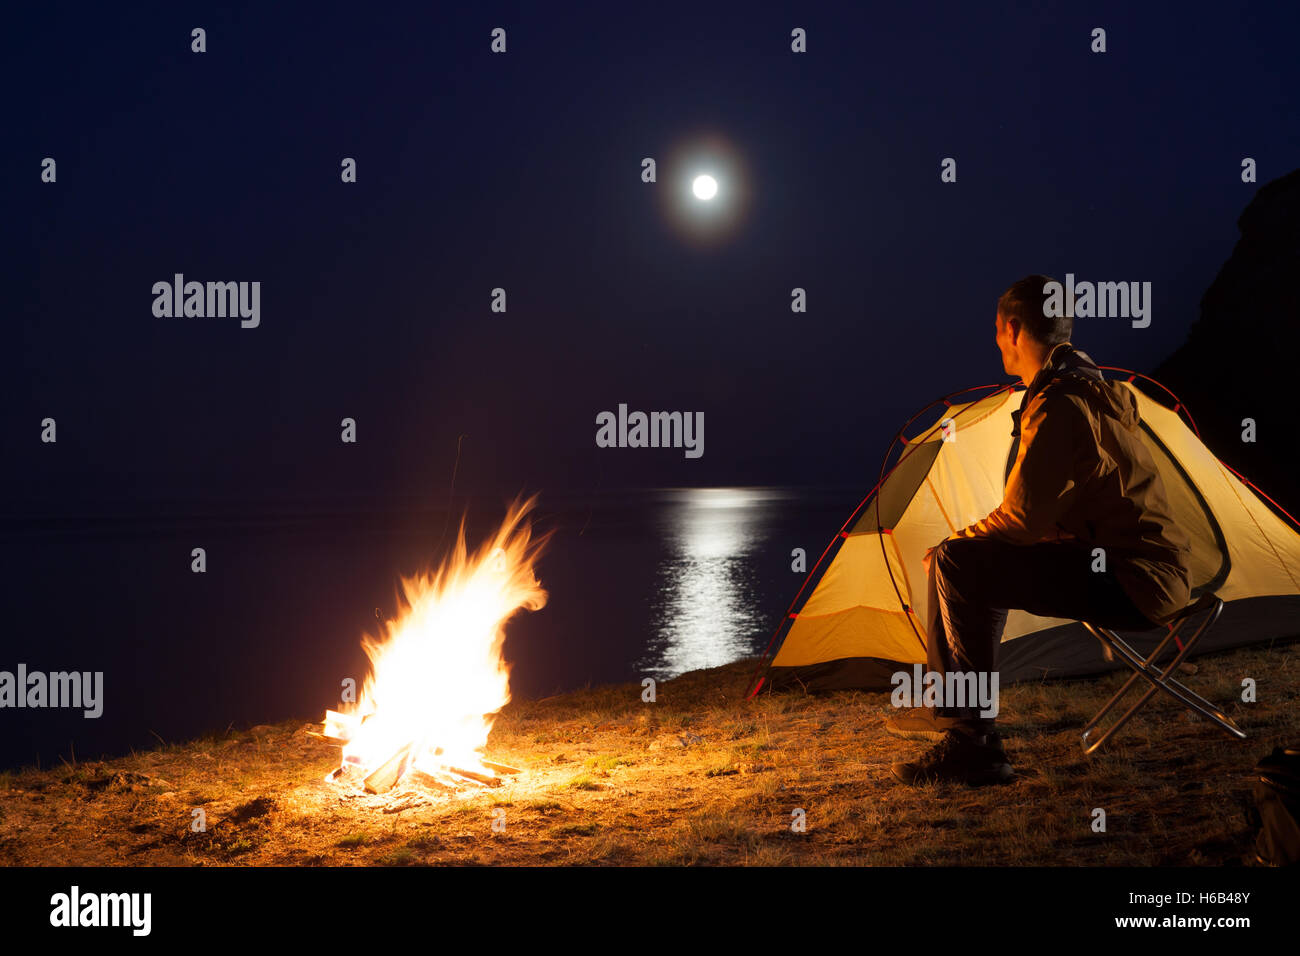 Tourist in a camp - Stock Image